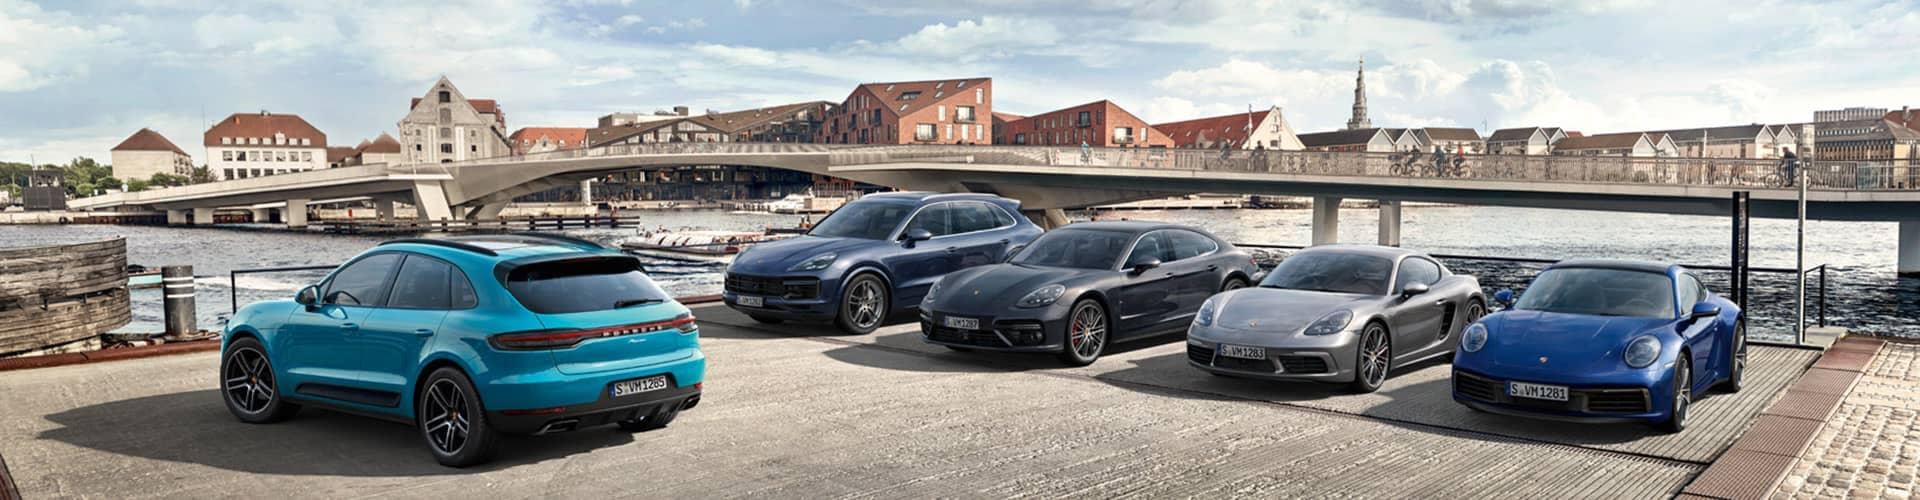 Porsche Certified Pre Owned >> Porsche Cpo Vs Independent Dealer Hendrick Porsche Charlotte